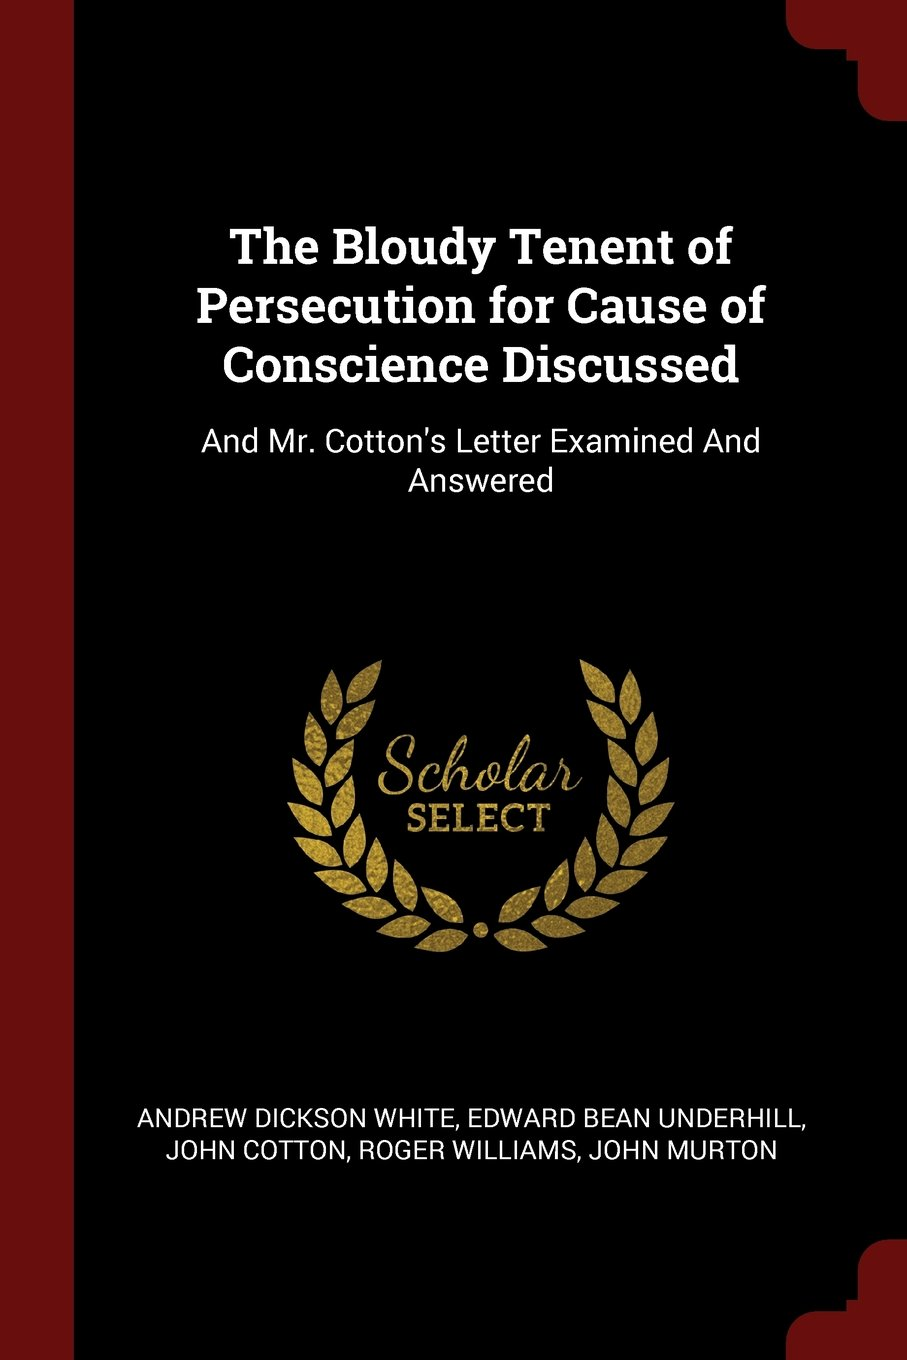 Download The Bloudy Tenent of Persecution for Cause of Conscience Discussed: And Mr. Cotton's Letter Examined And Answered PDF